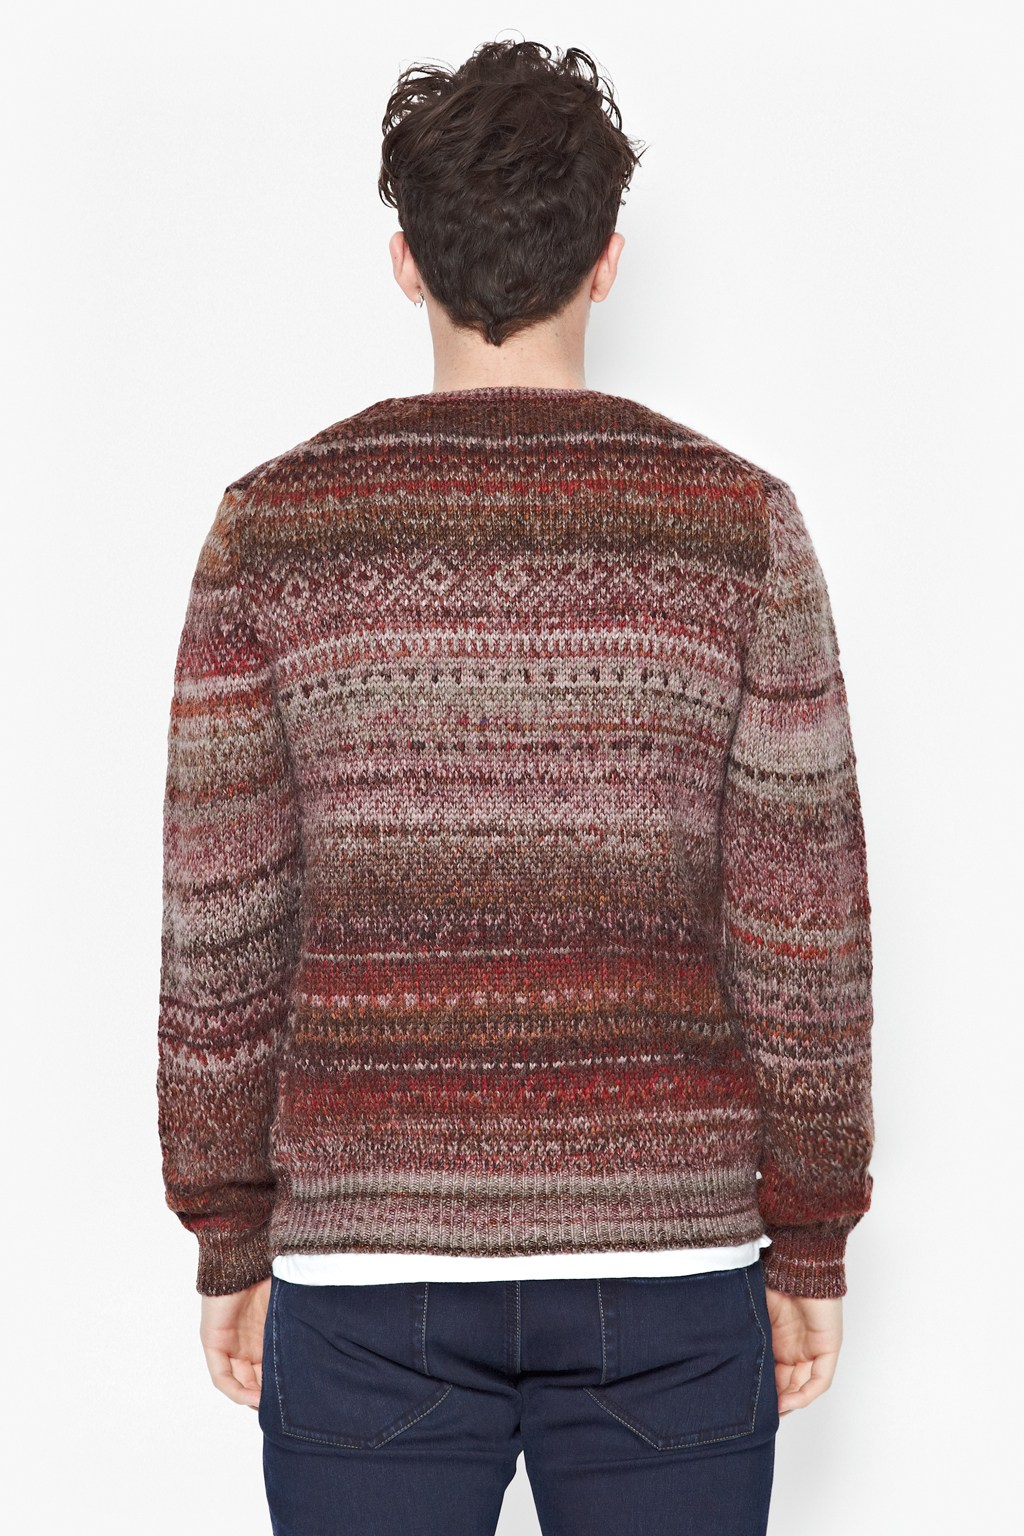 French Connection Pheasant Tweed Fair Isle Jumper in Red for Men